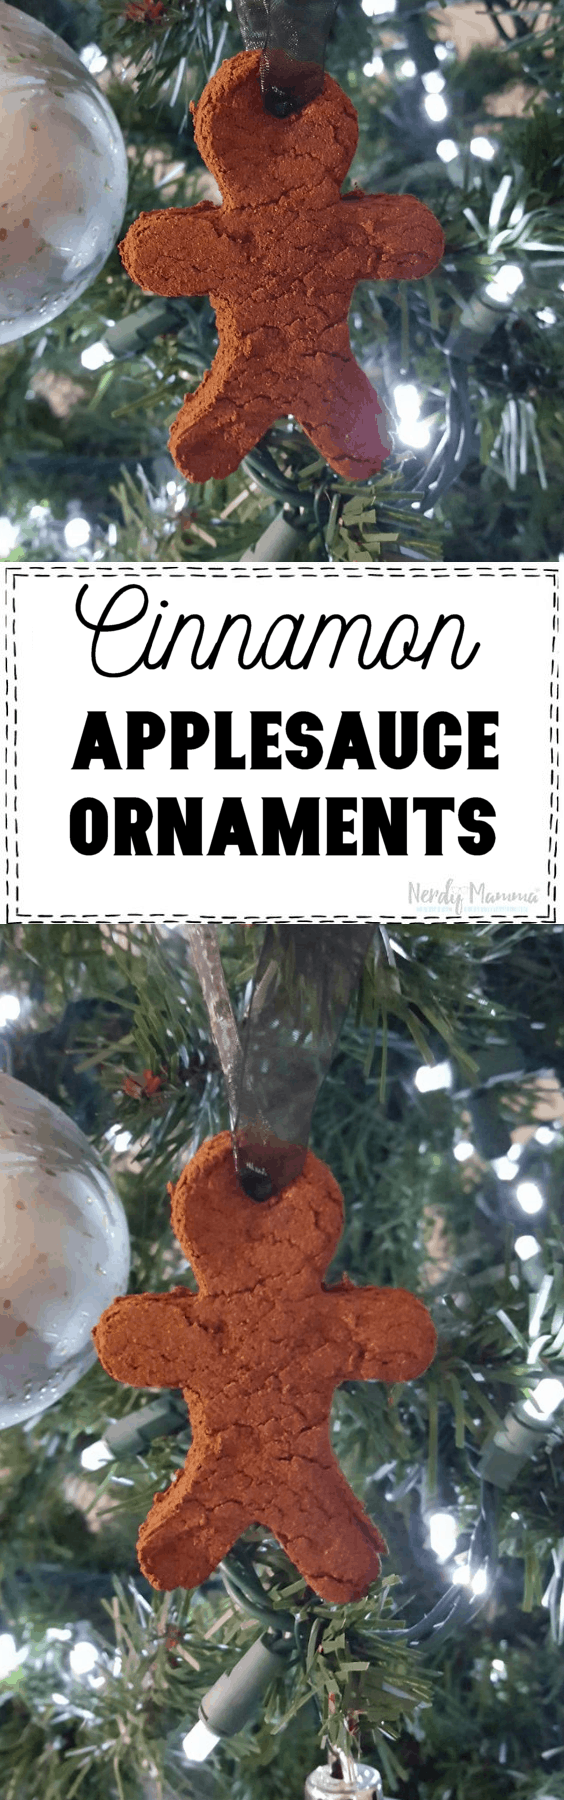 Cinnamon Applesauce Ornaments are the funniest creation I swear! They smell so darn good all through your home. It's like the smell of Christmas or fresh baked apple pie. They are so simple and so fun for the kids.